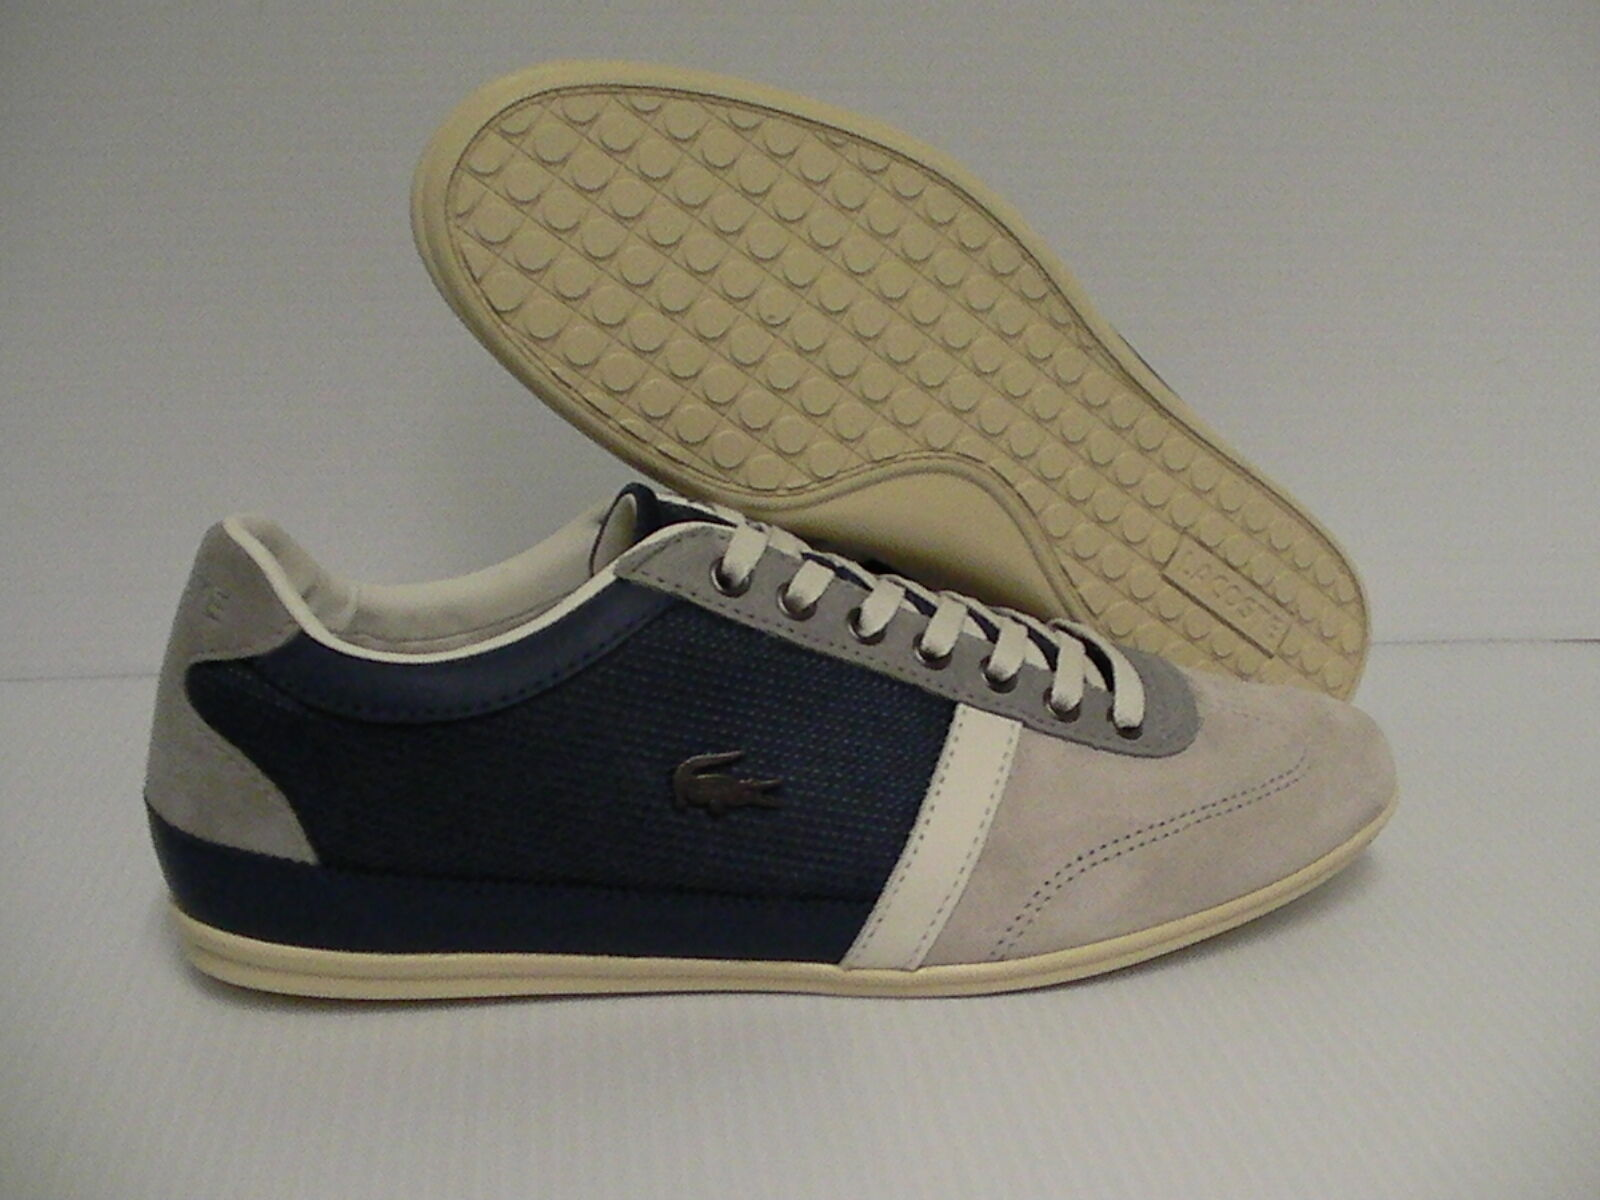 Lacoste Men's shoes casual Leather suede Textile Misano 28 size 9 us bluee